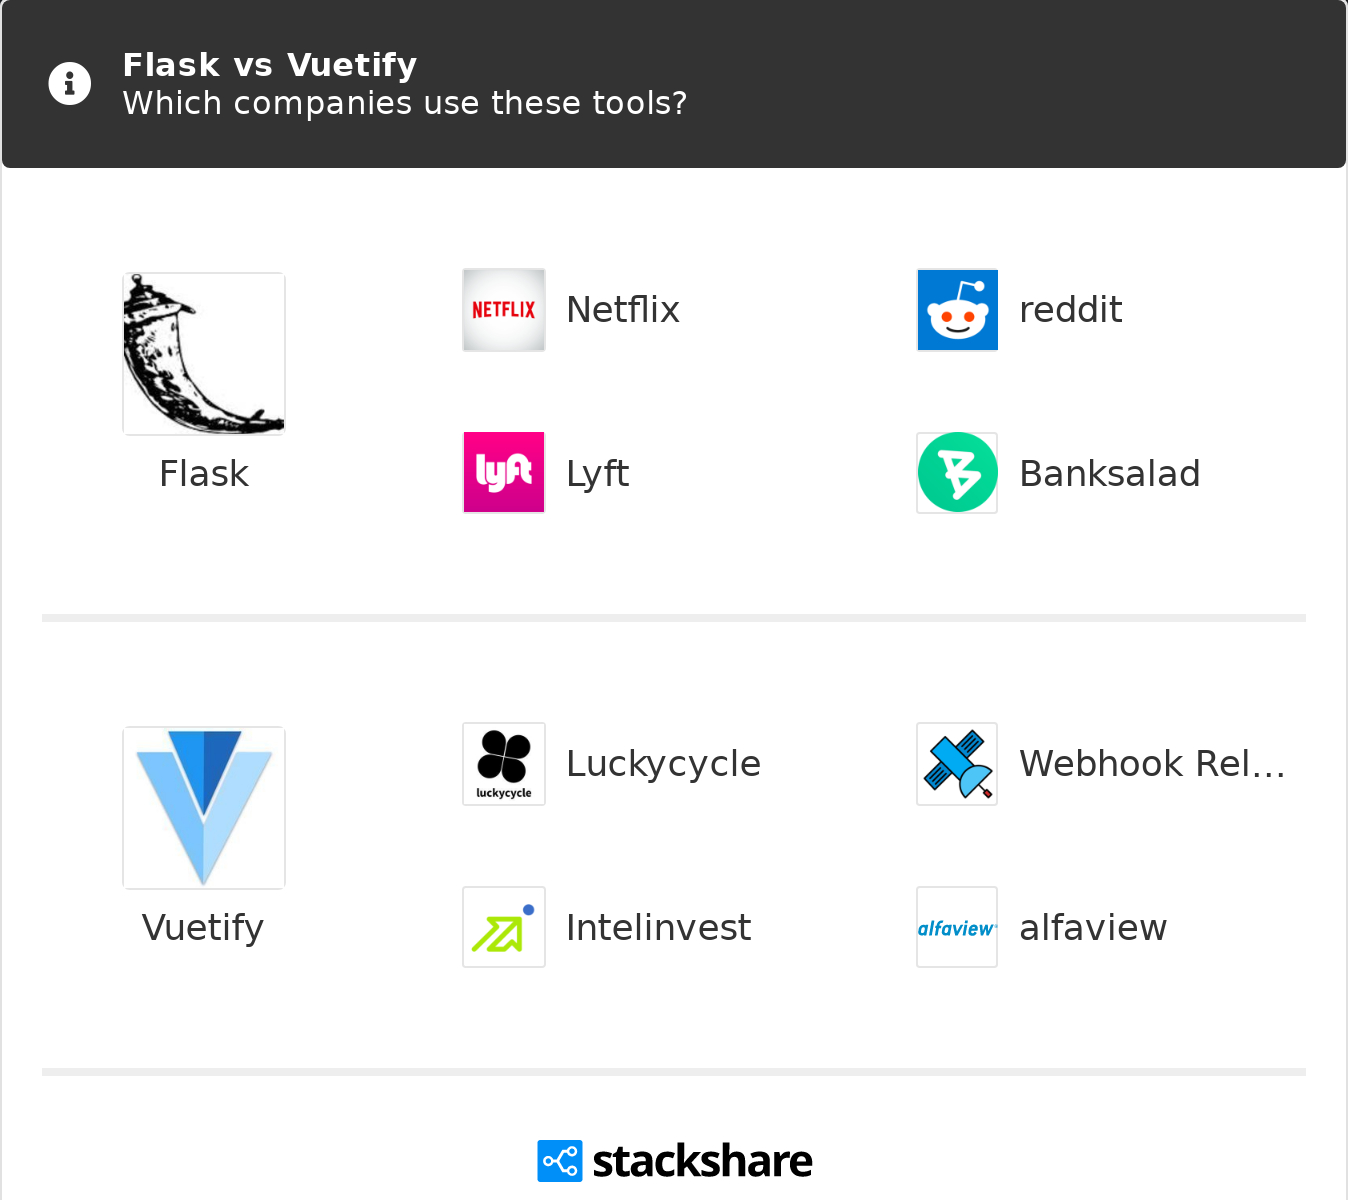 Flask vs Vuetify | What are the differences?